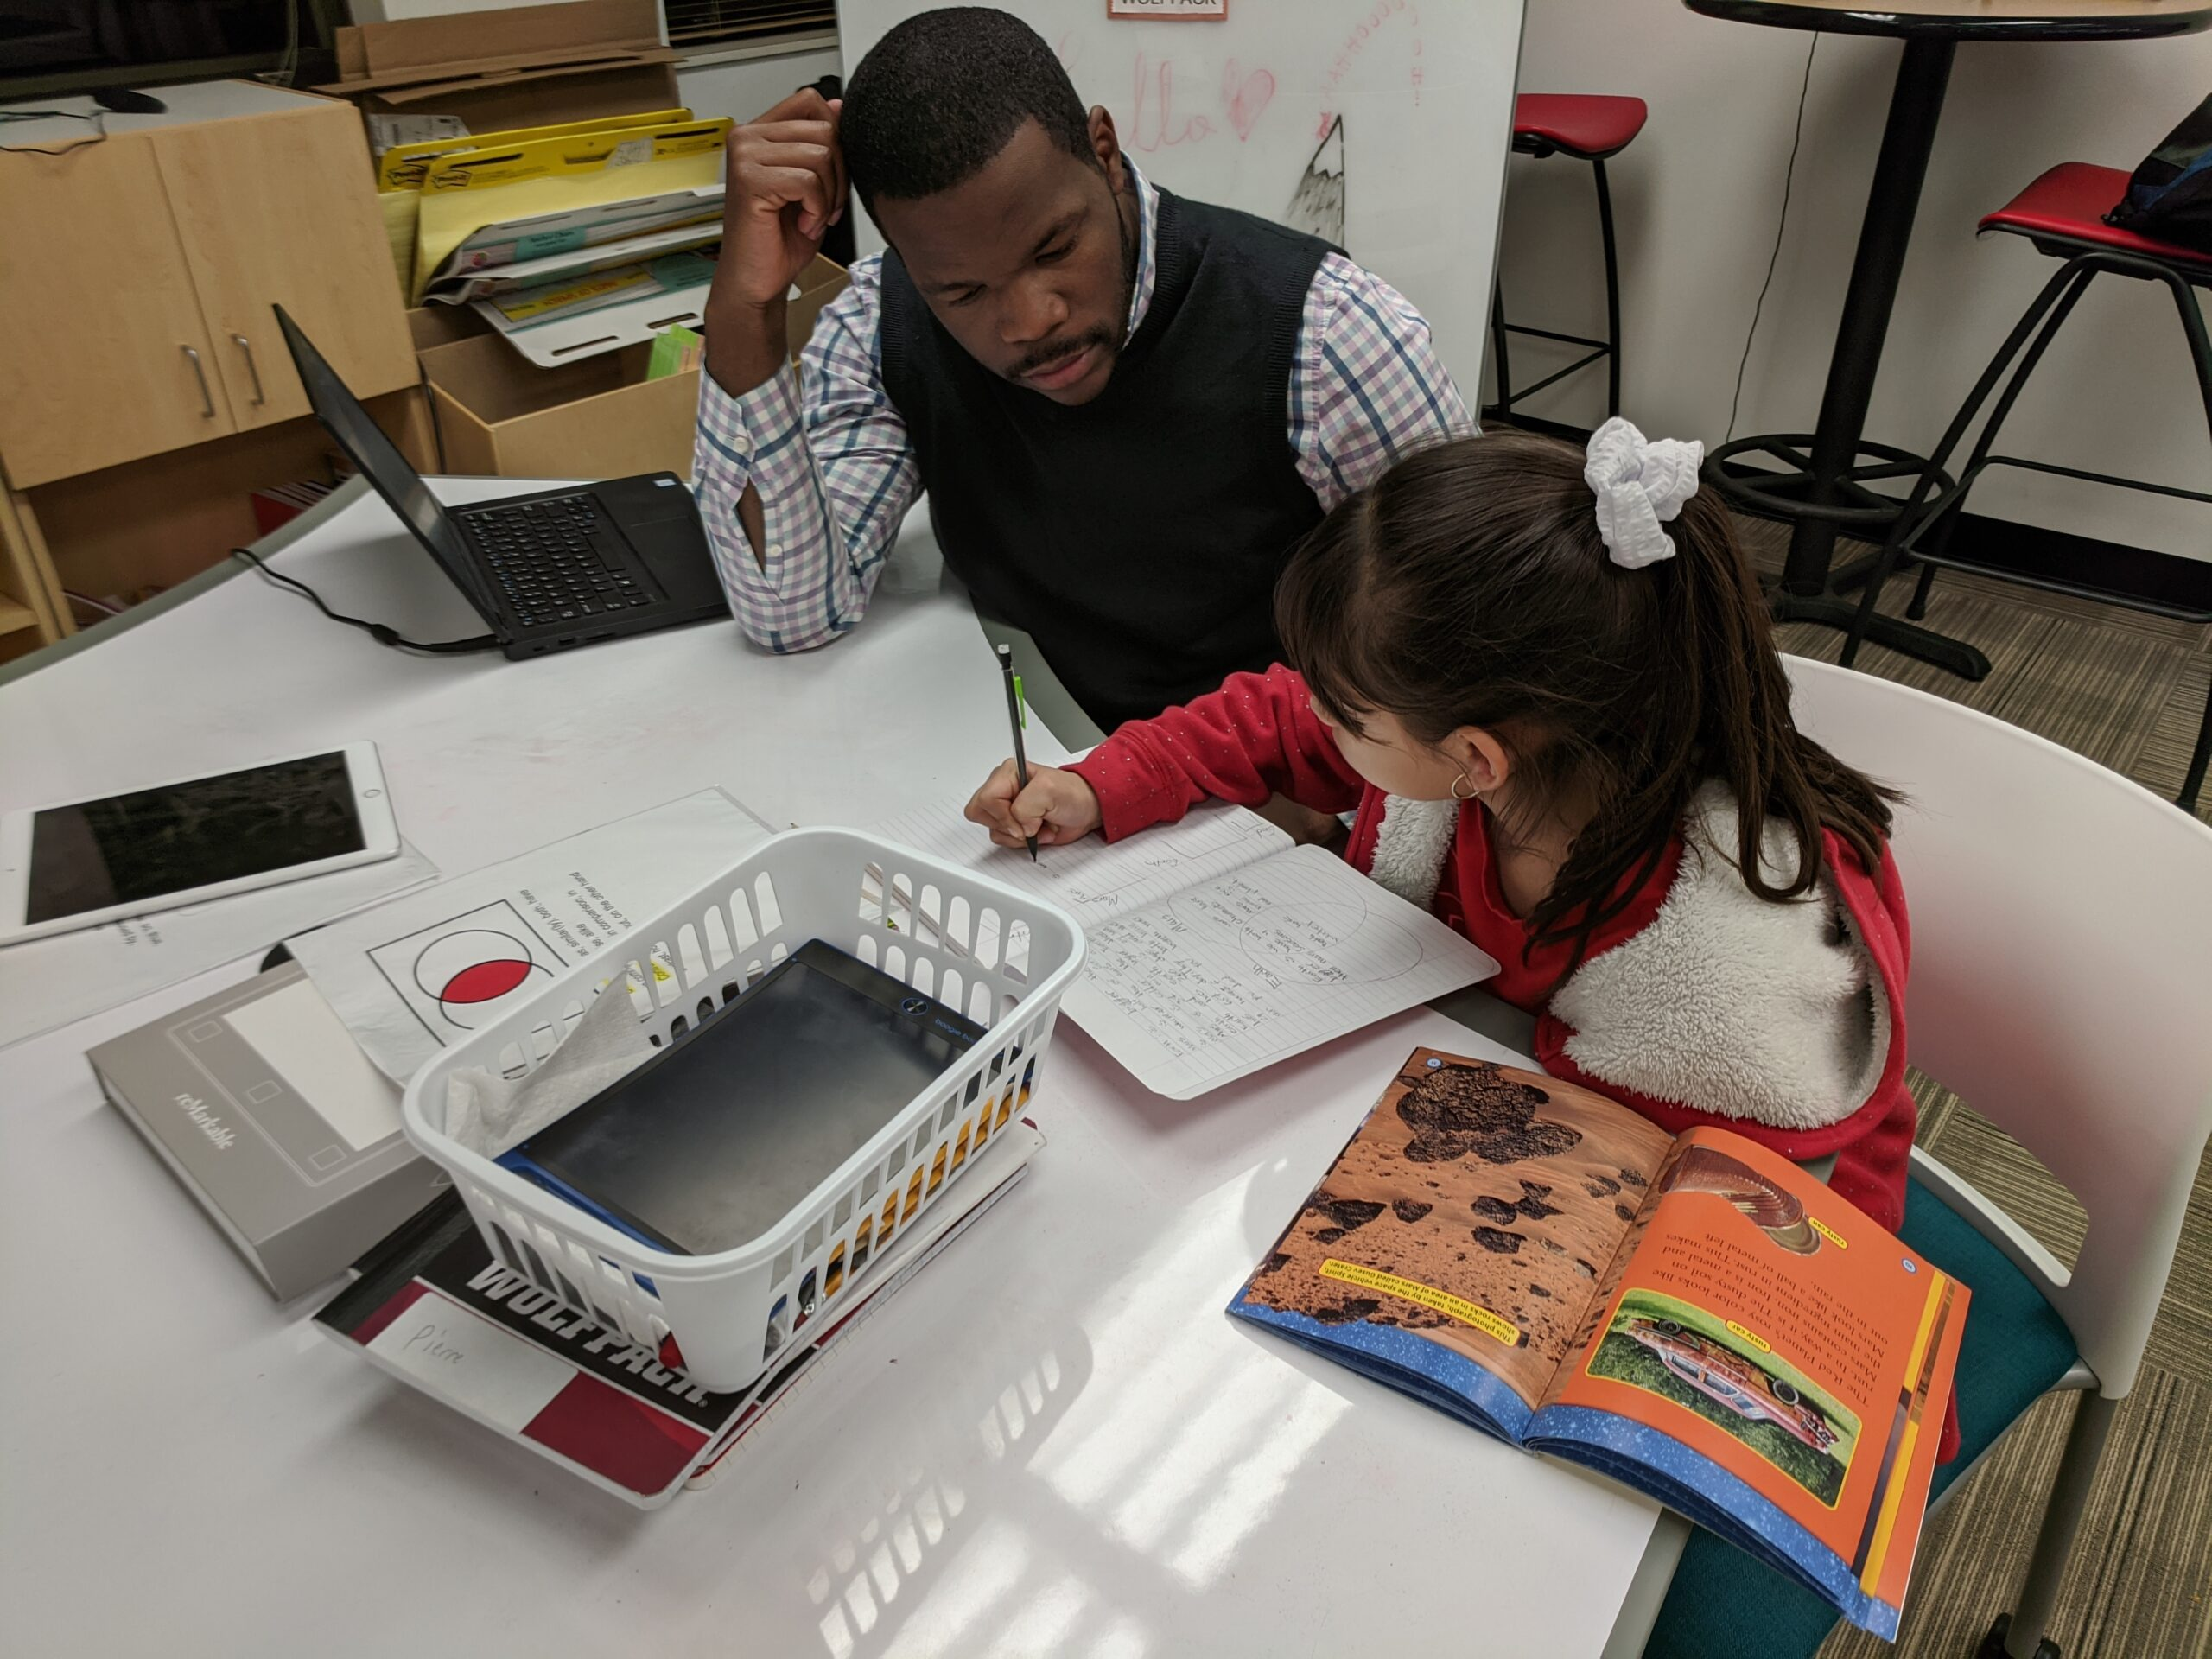 A teacher and student working at a desk